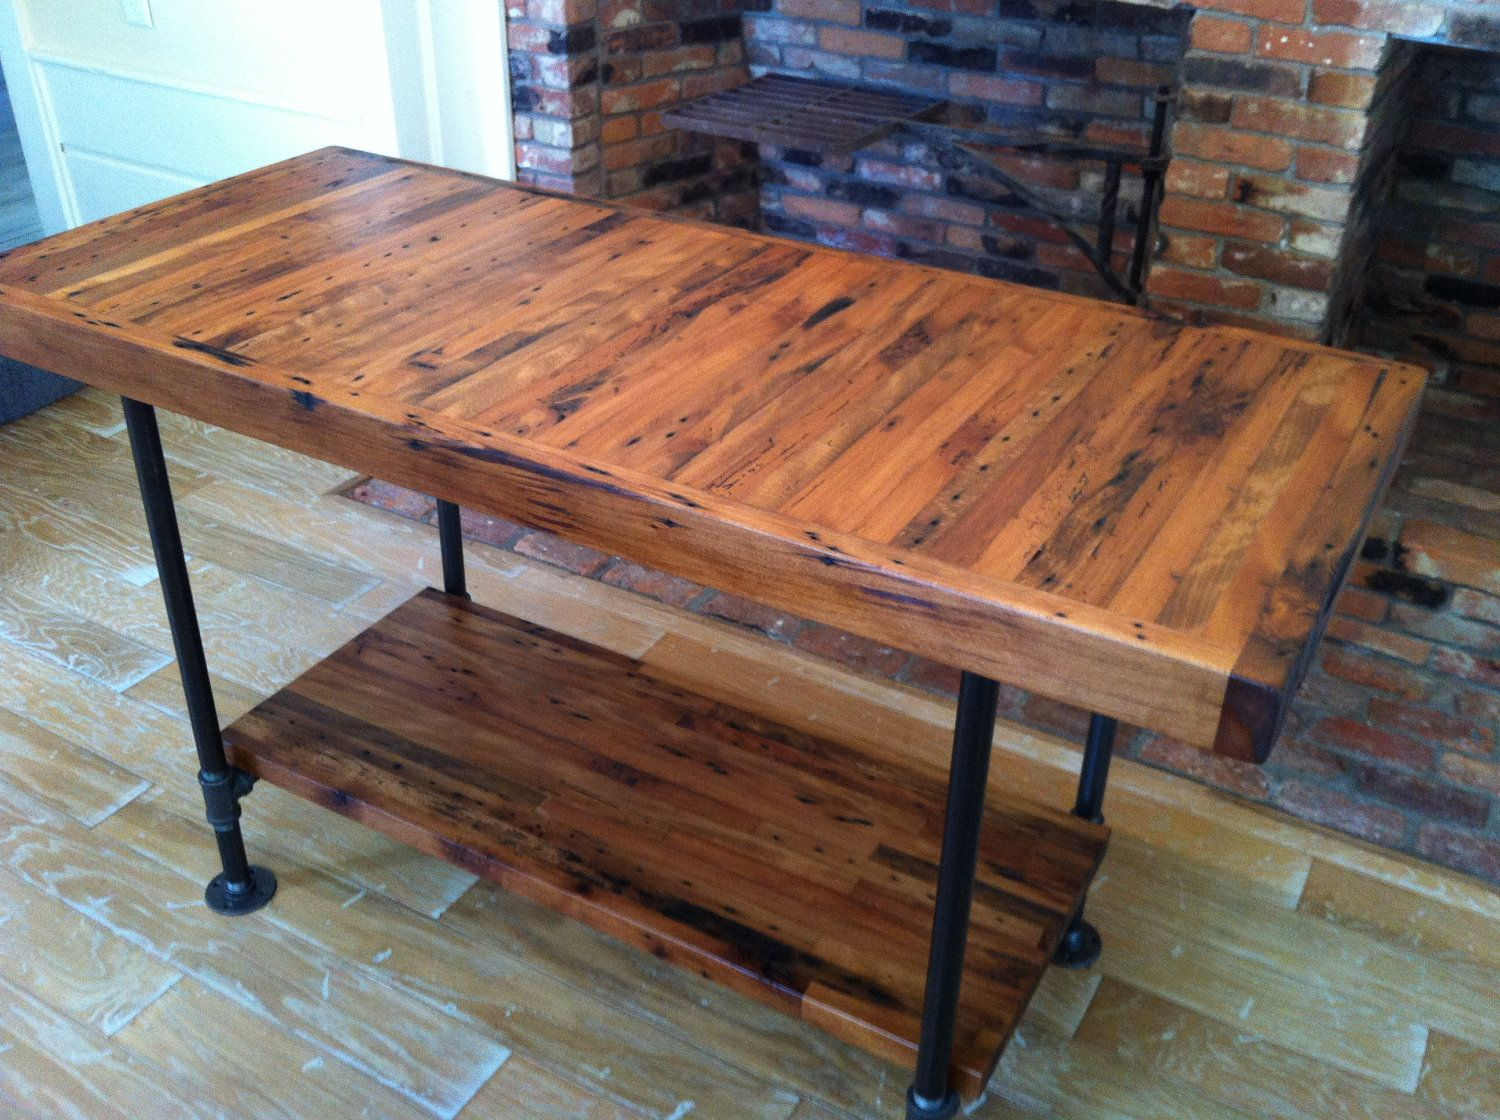 Kitchen Furniture Reclaimed Wooden Butcher Block Island With Black